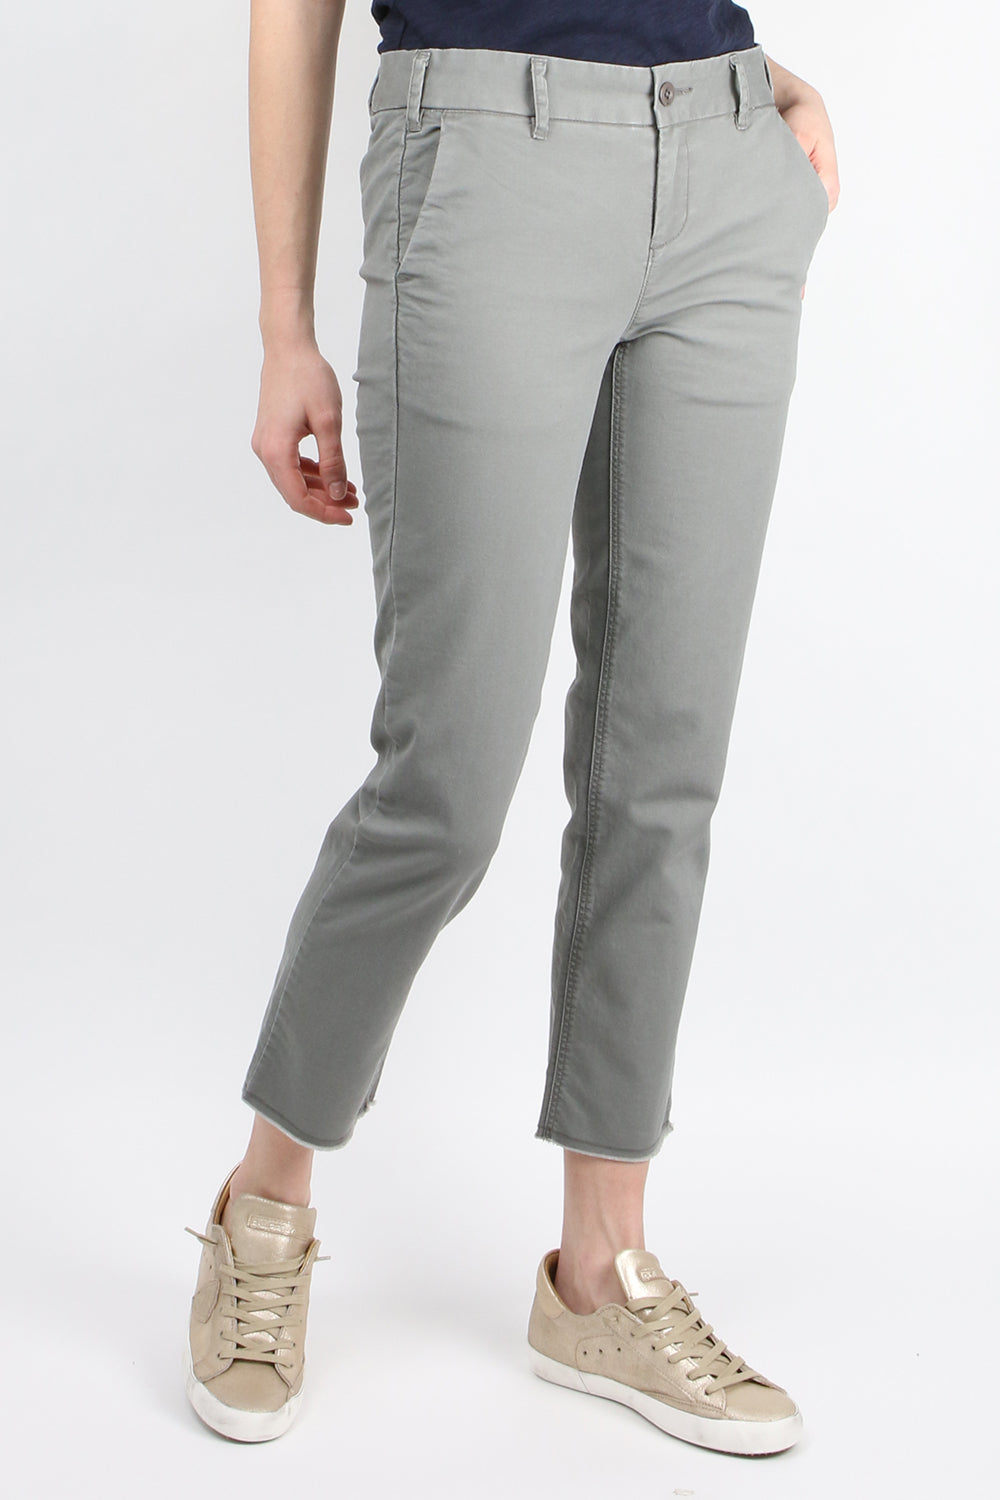 G1 Goods Dock Pant Drab